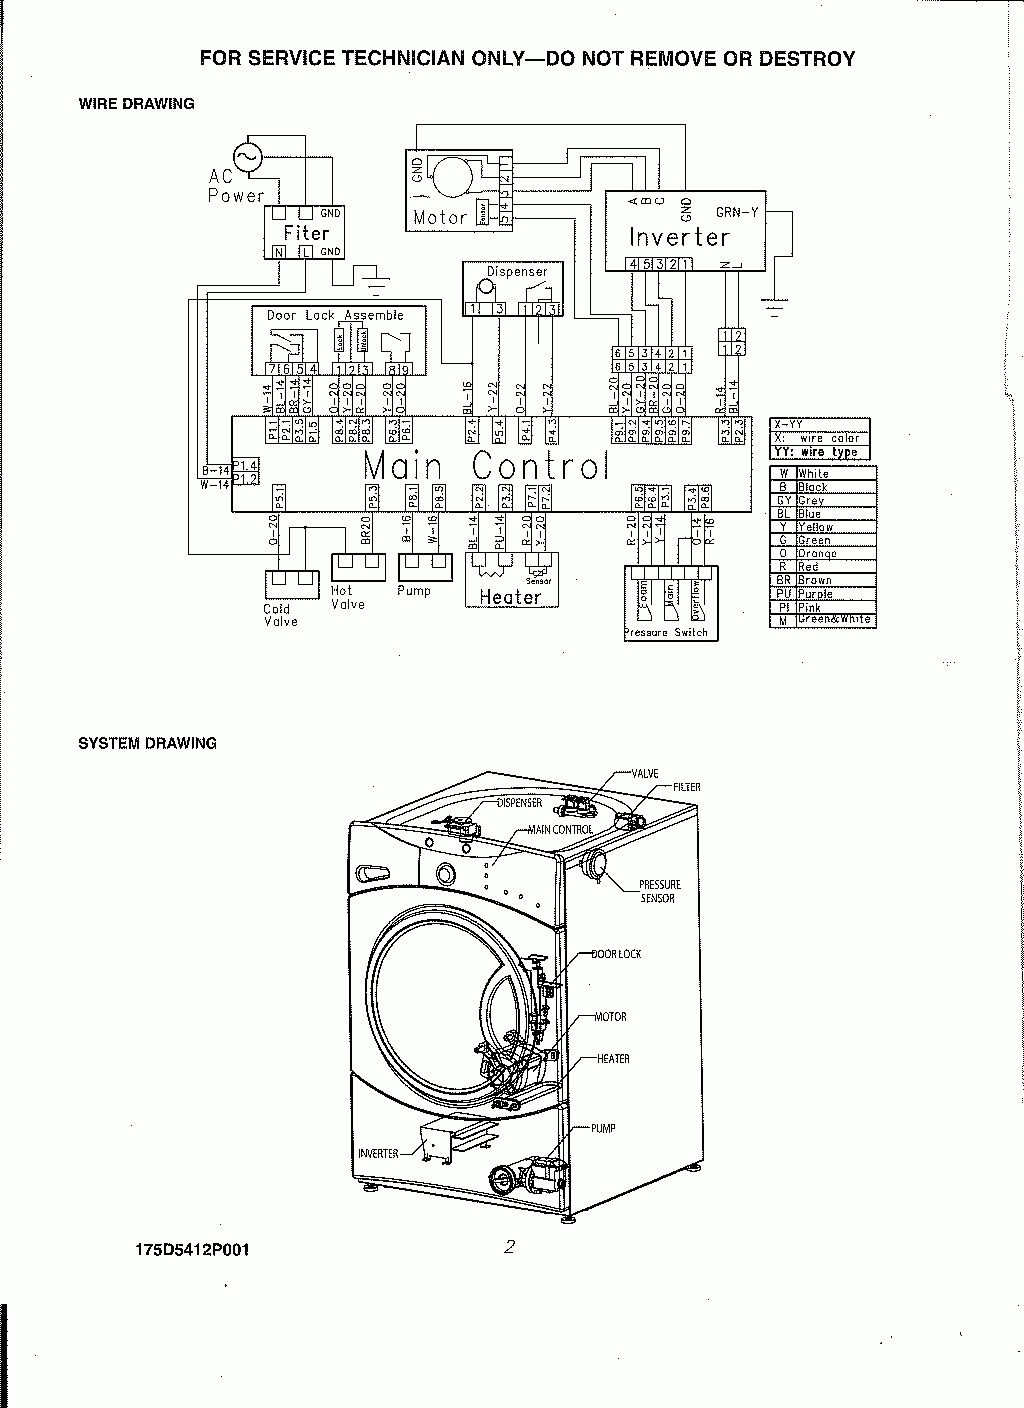 ge front load washer diagram major arteries and veins washing machine schematic free engine image for